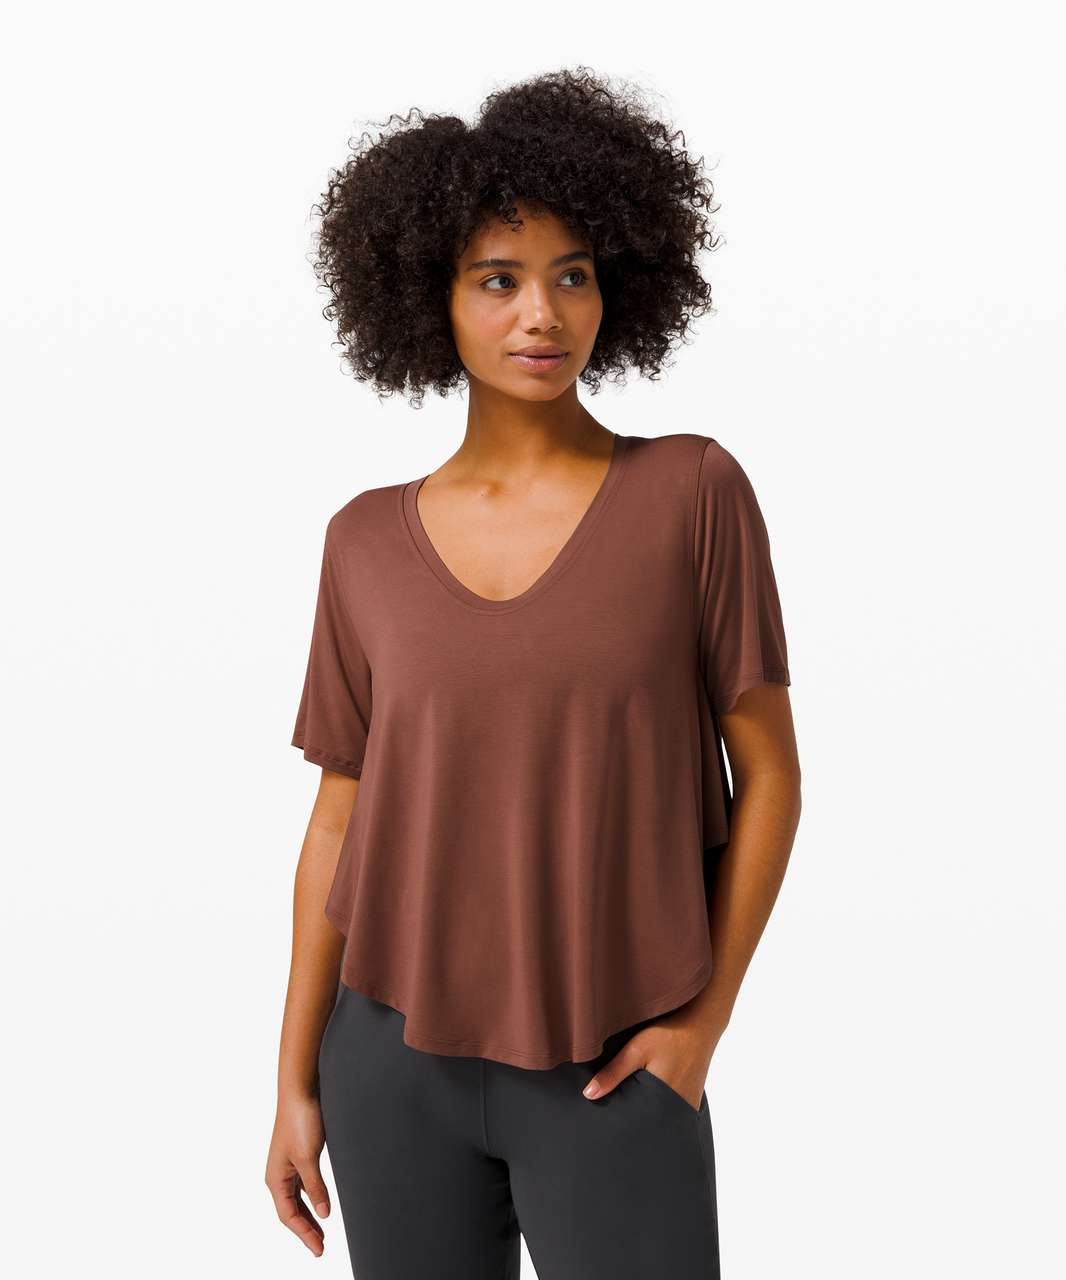 Lululemon Up for Down Time Short Sleeve - Ancient Copper